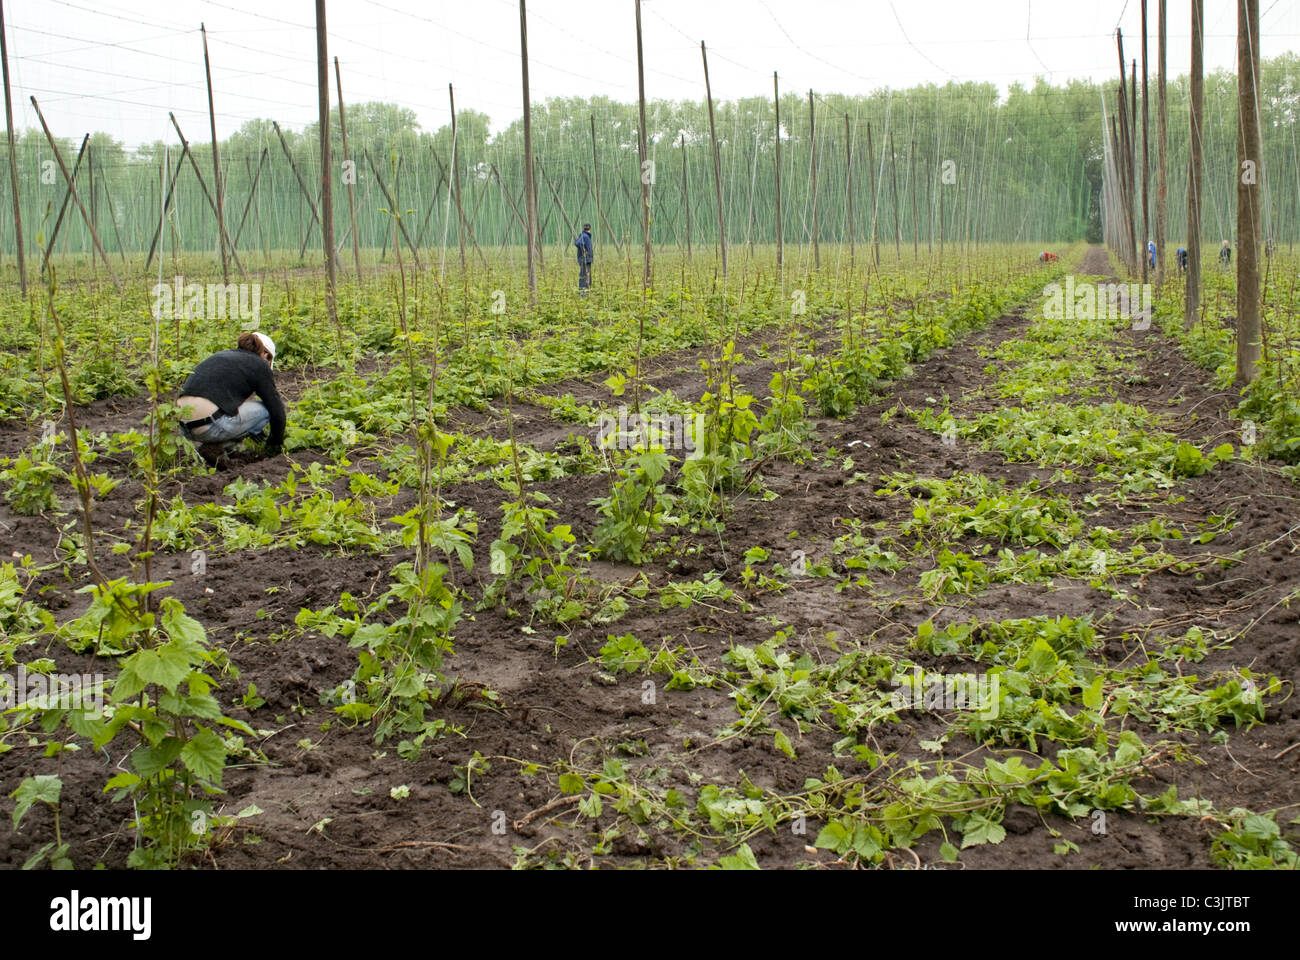 hop-field in May - Stock Image